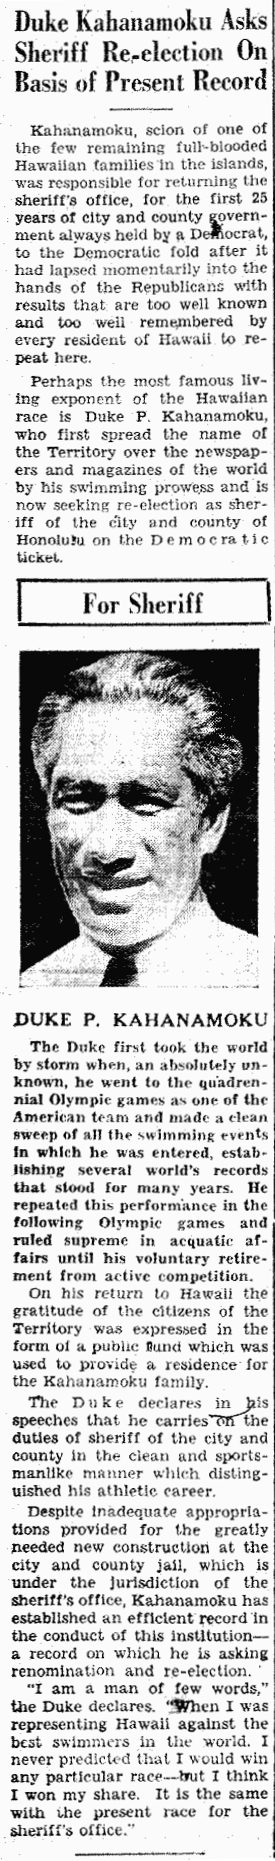 Duke Kahanamoku Asks Sheriff Re-election On Basis of Present Record